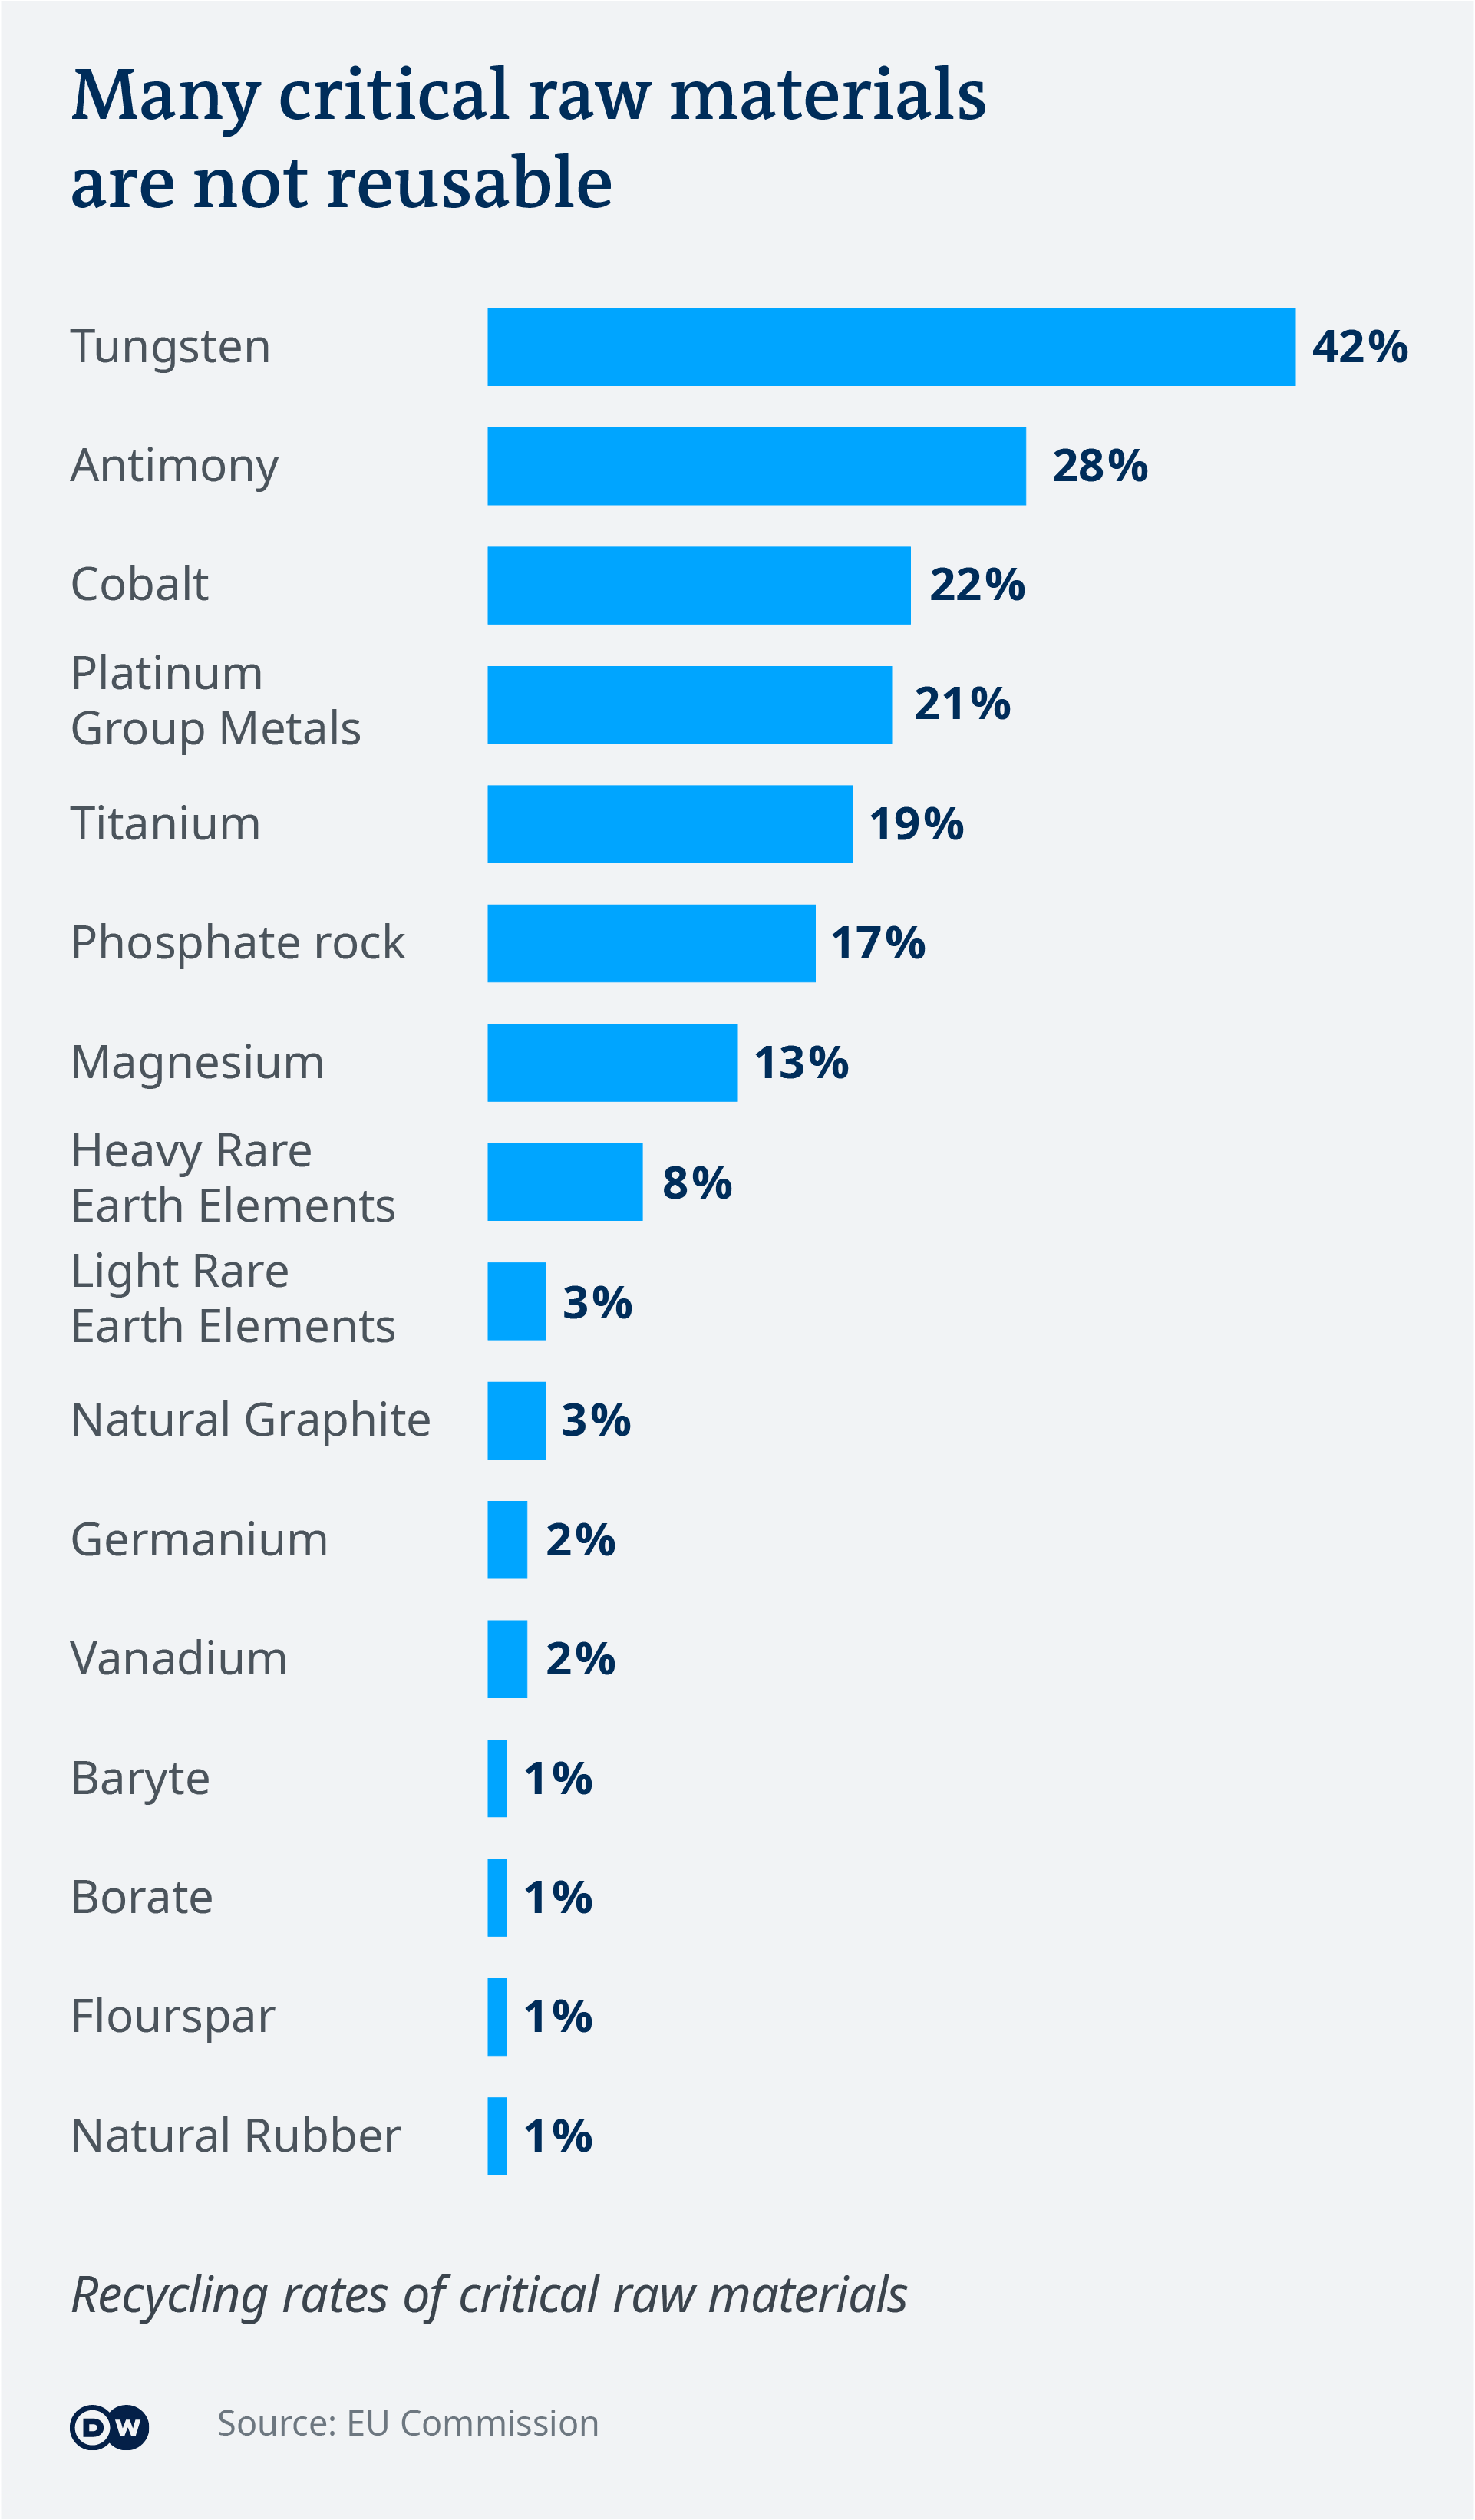 Data visualization: Many critical raw materials are not reusable